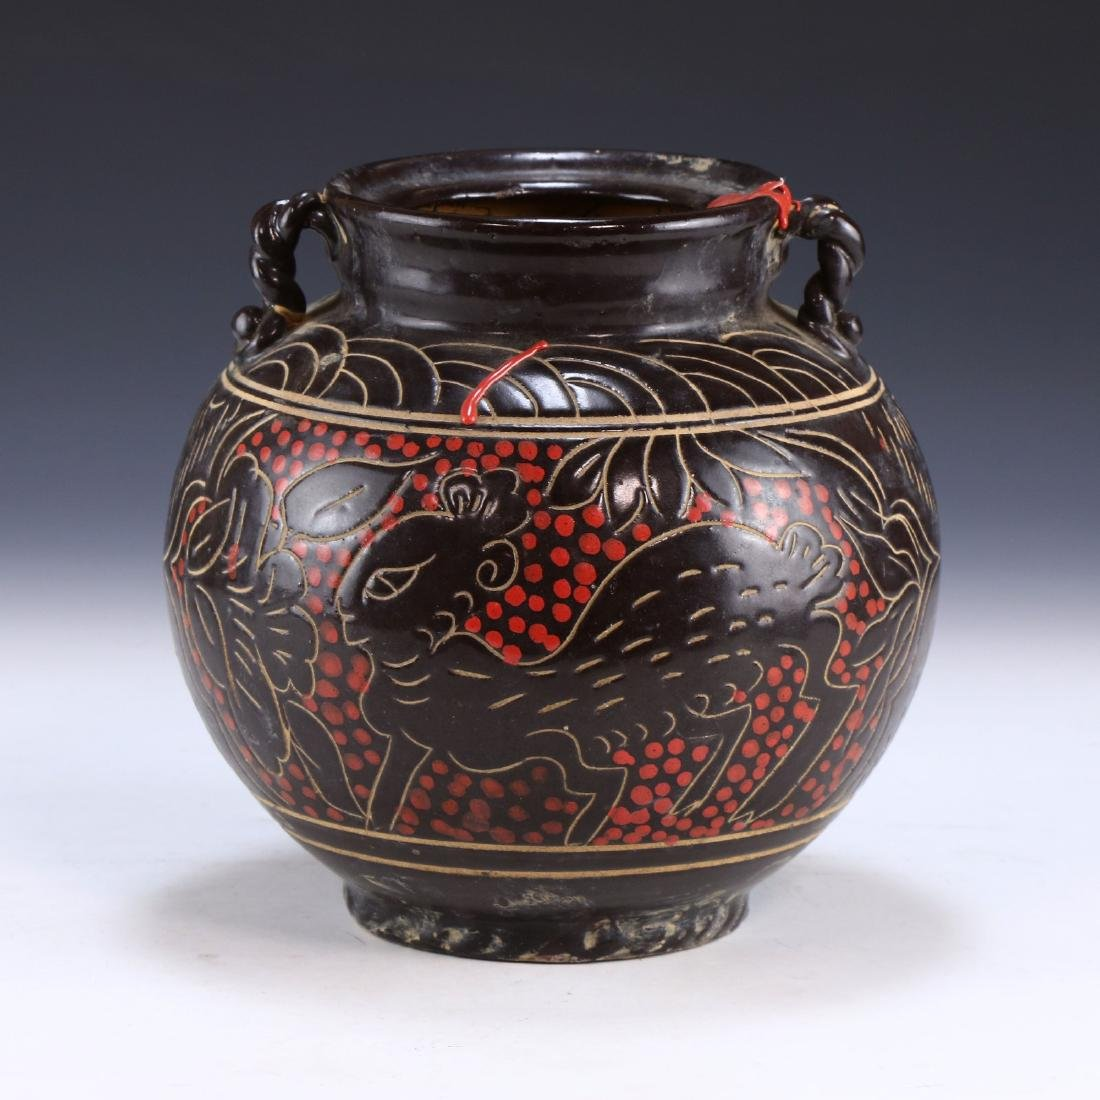 A CHINESE BLACK GLAZED PORCELAIN JAR